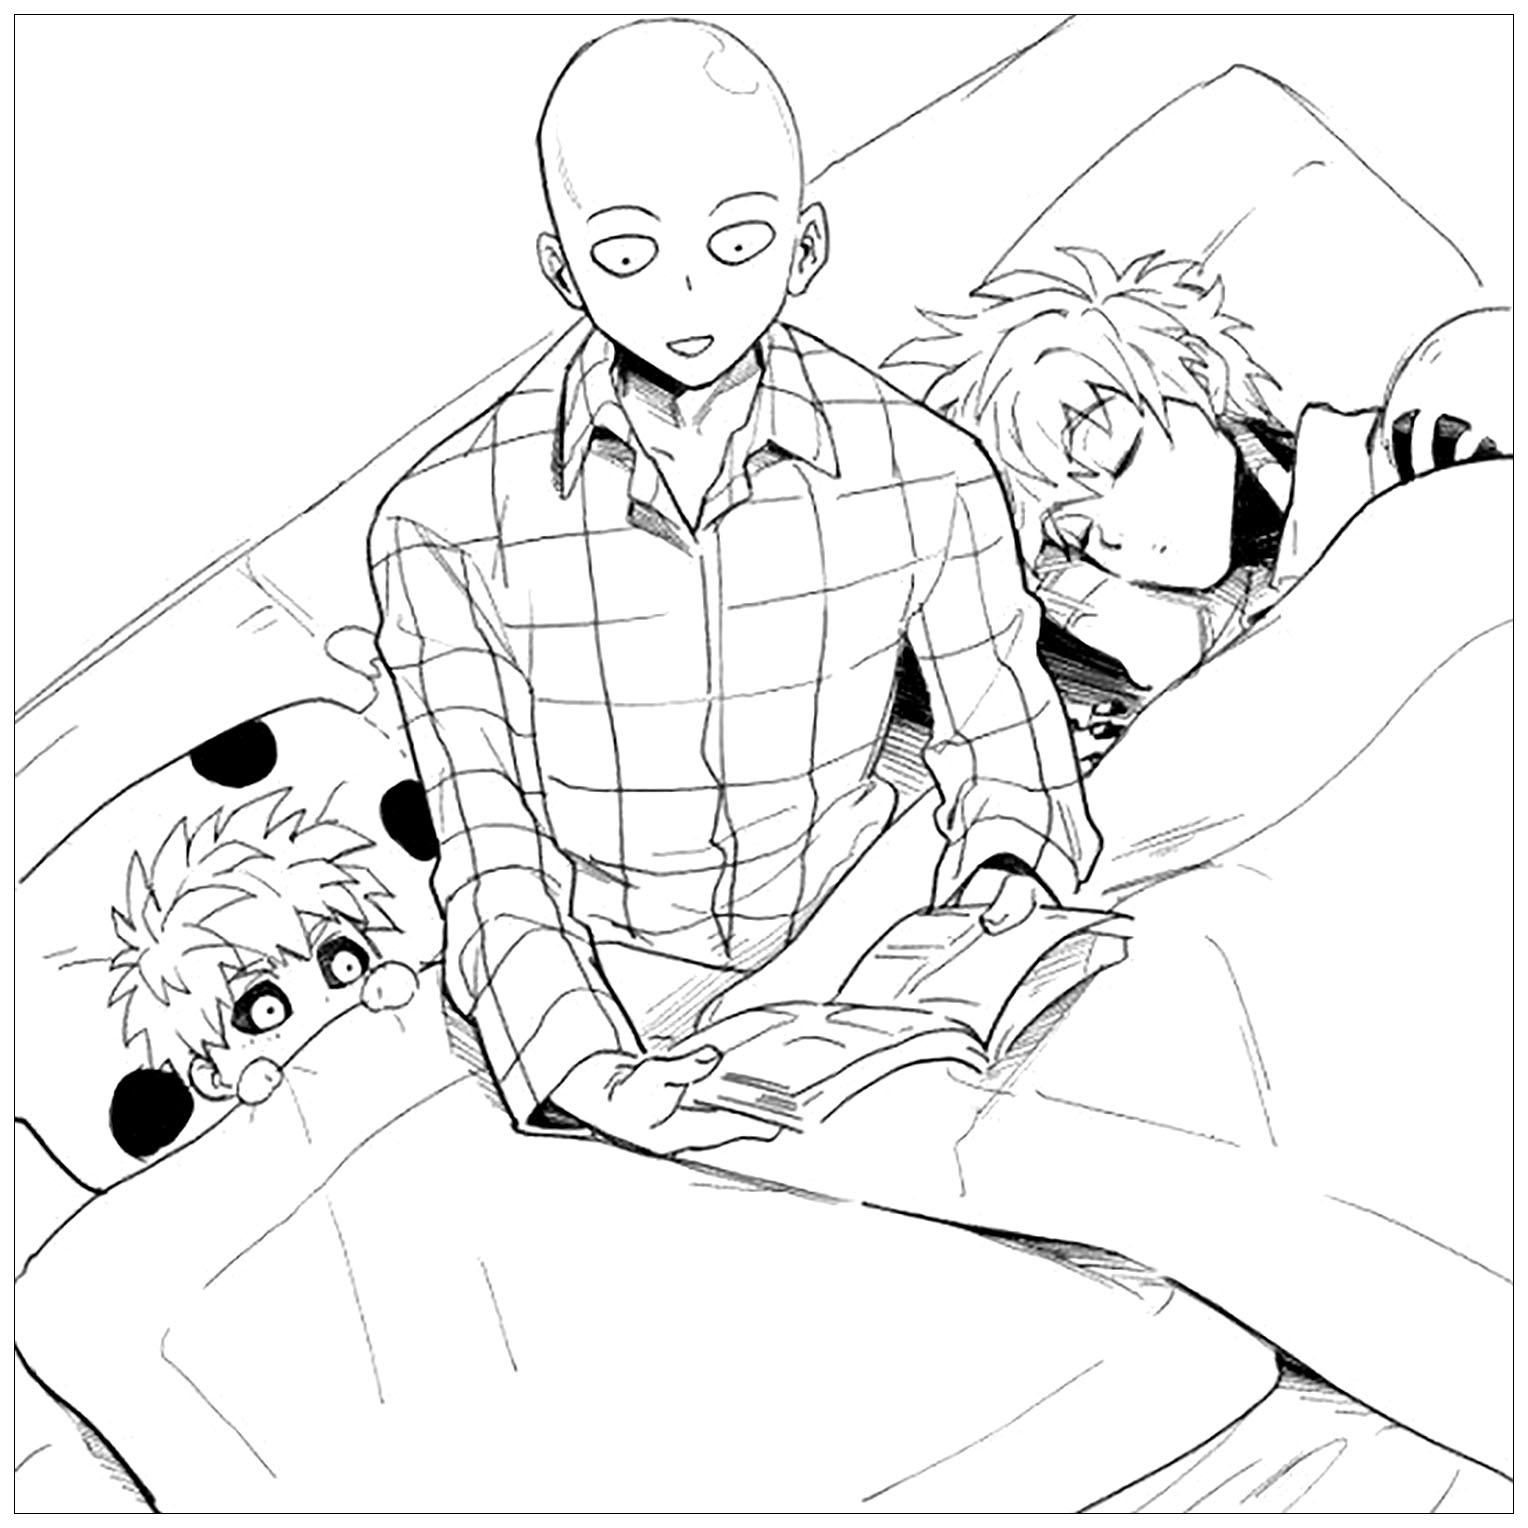 Simple One Punch Man coloring page to print and color for free